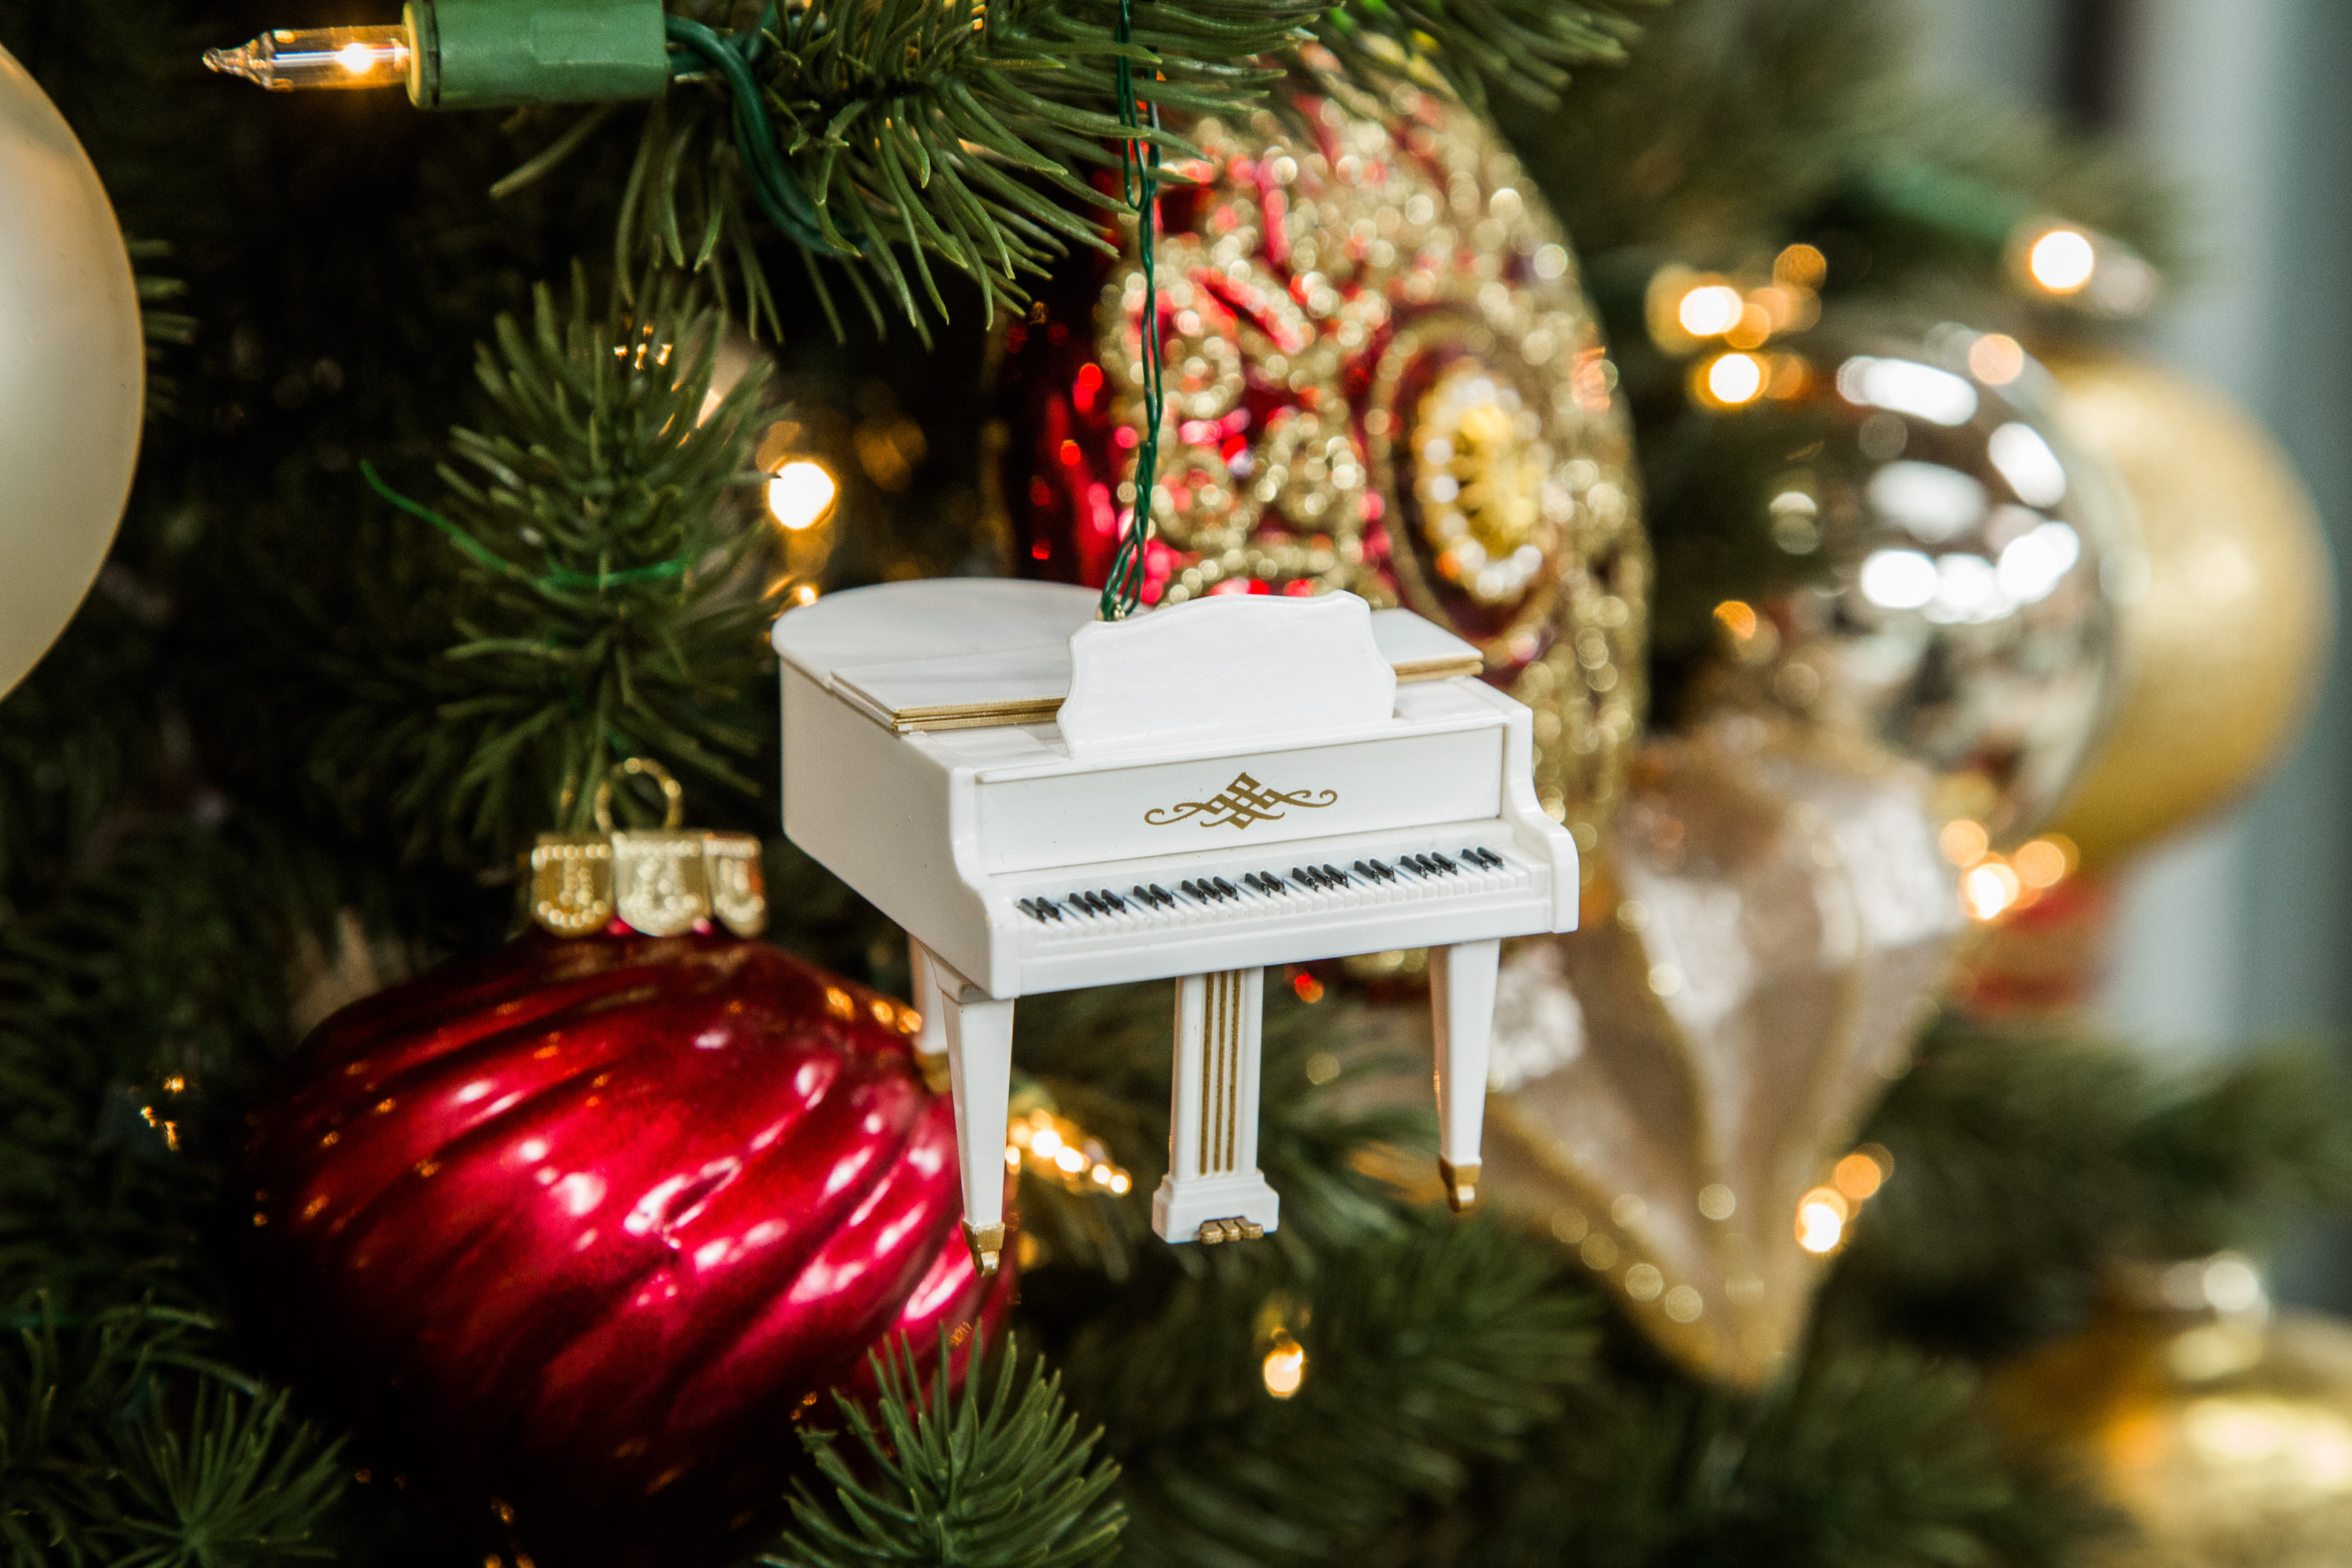 hark  the herald angels sing  piano music ornament